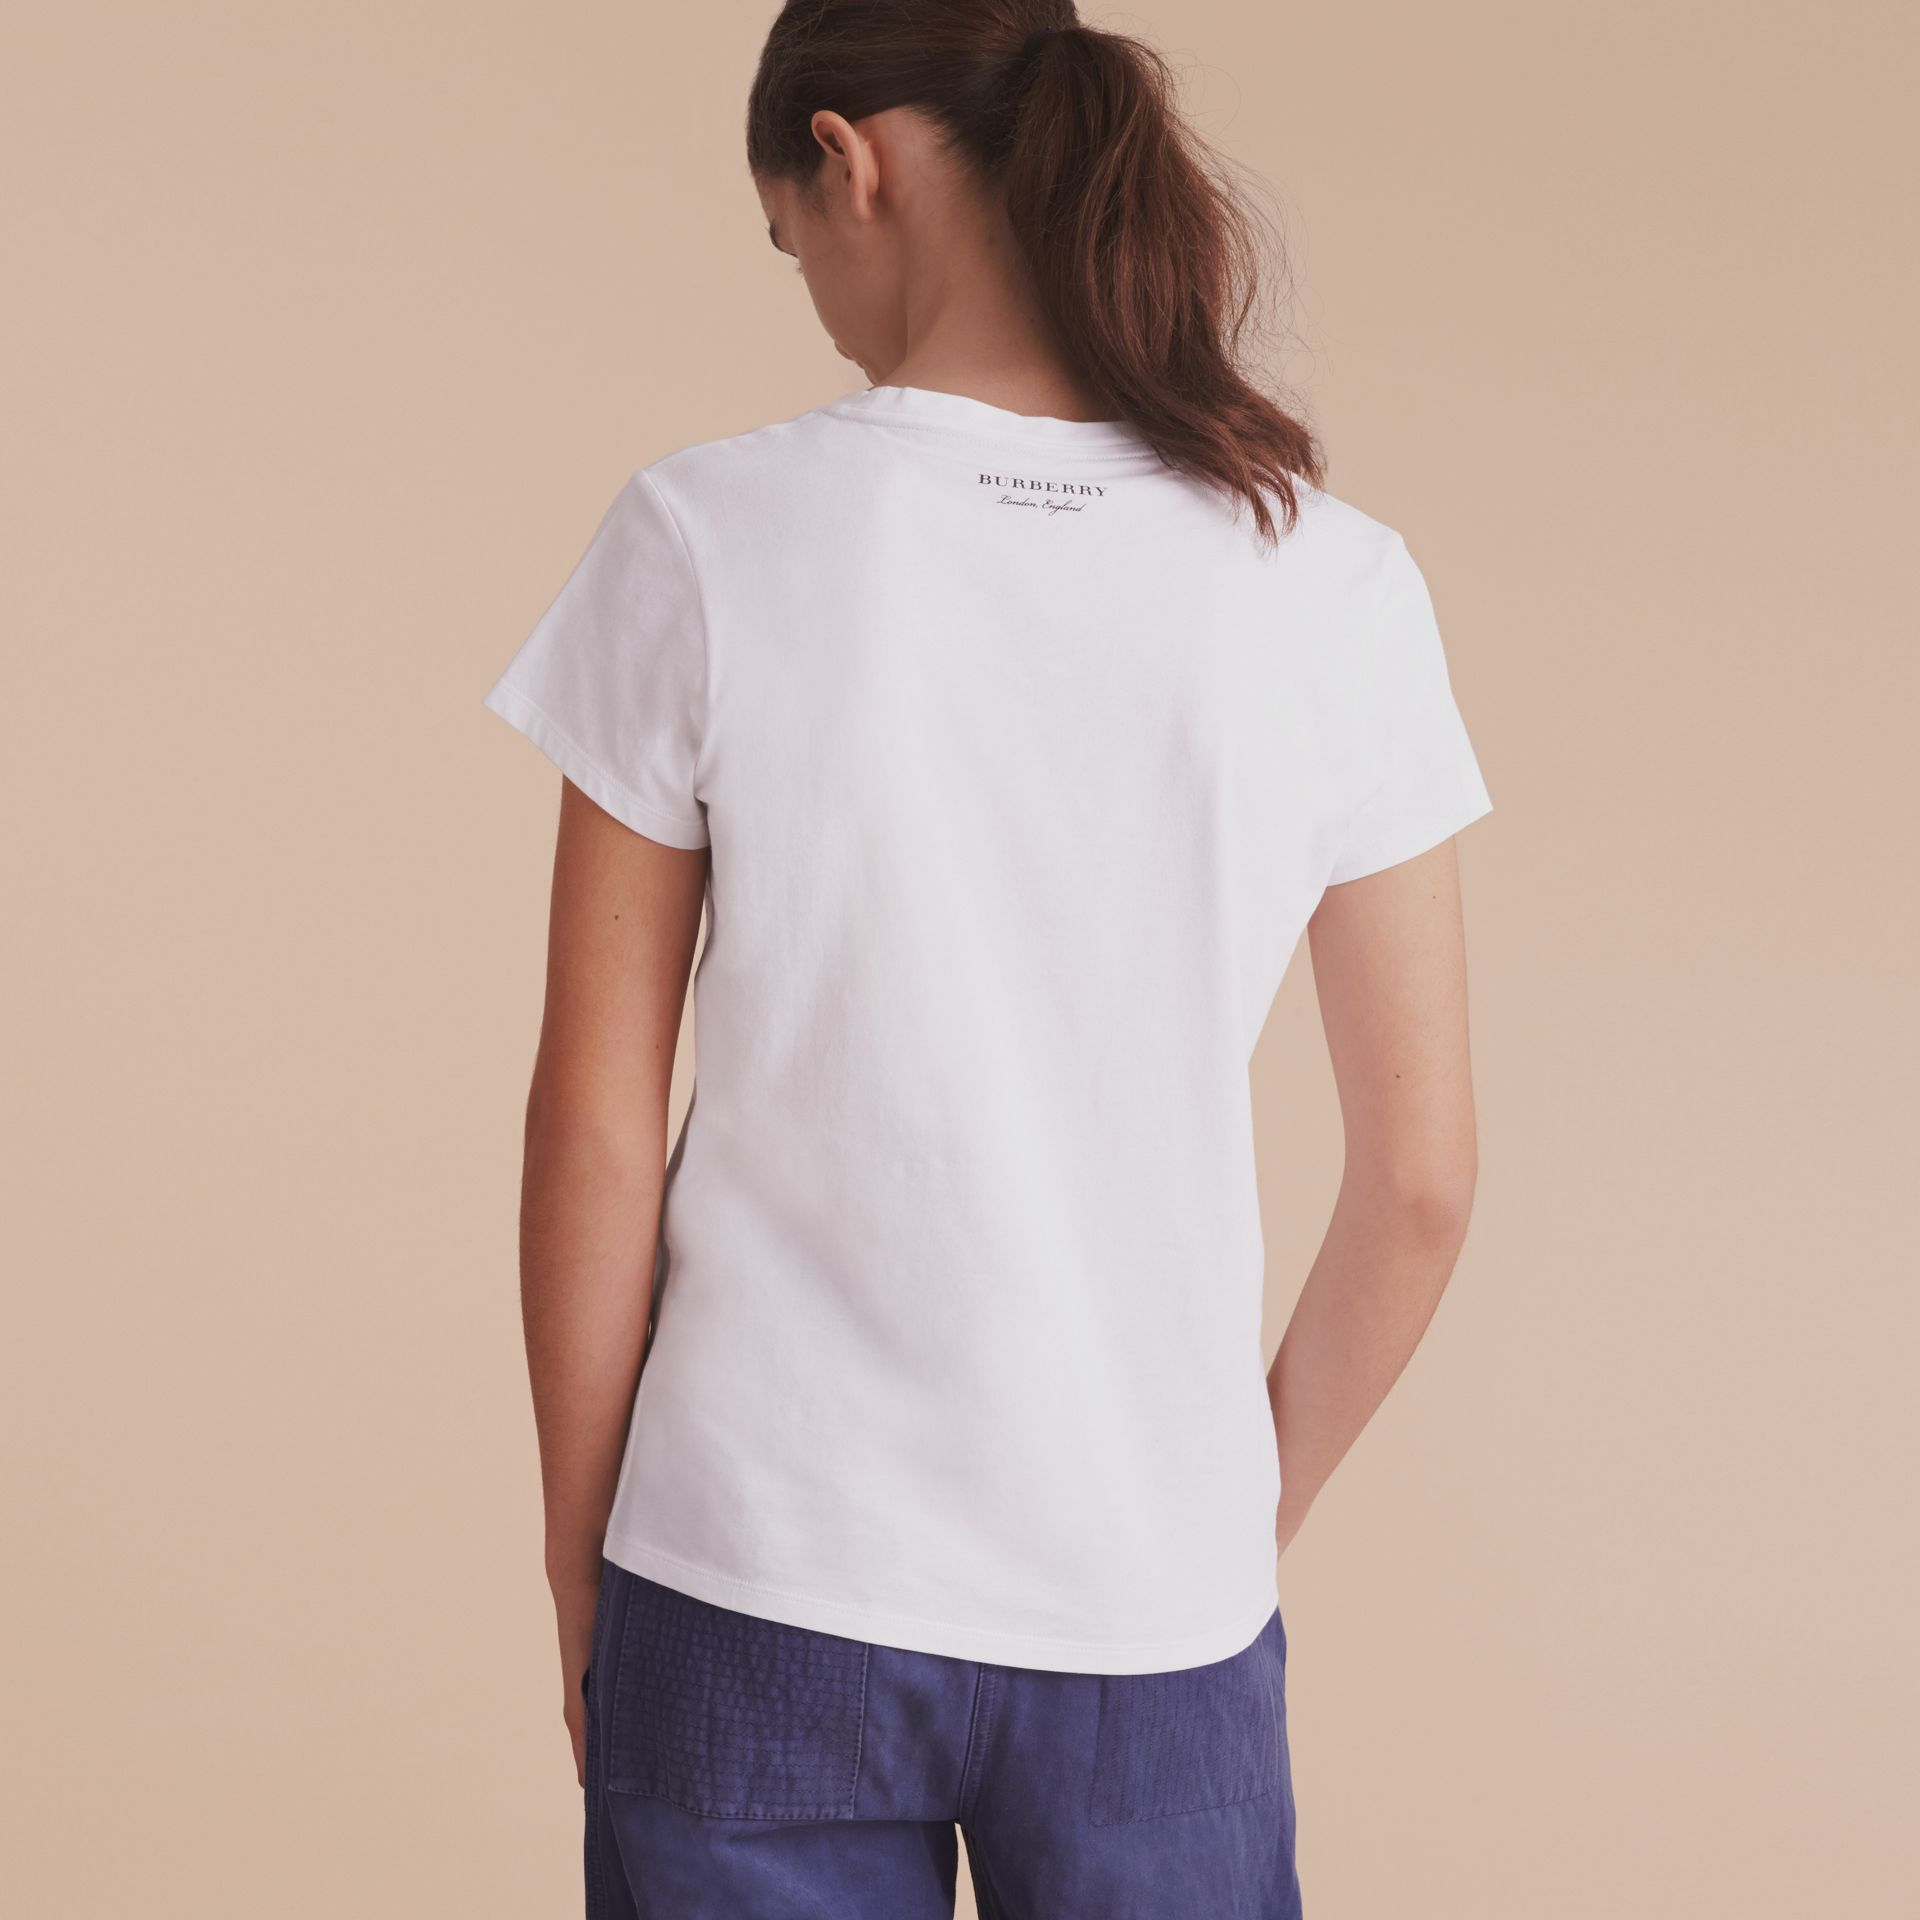 Pallas Heads Print Cotton T-shirt in White - Women | Burberry - gallery image 3